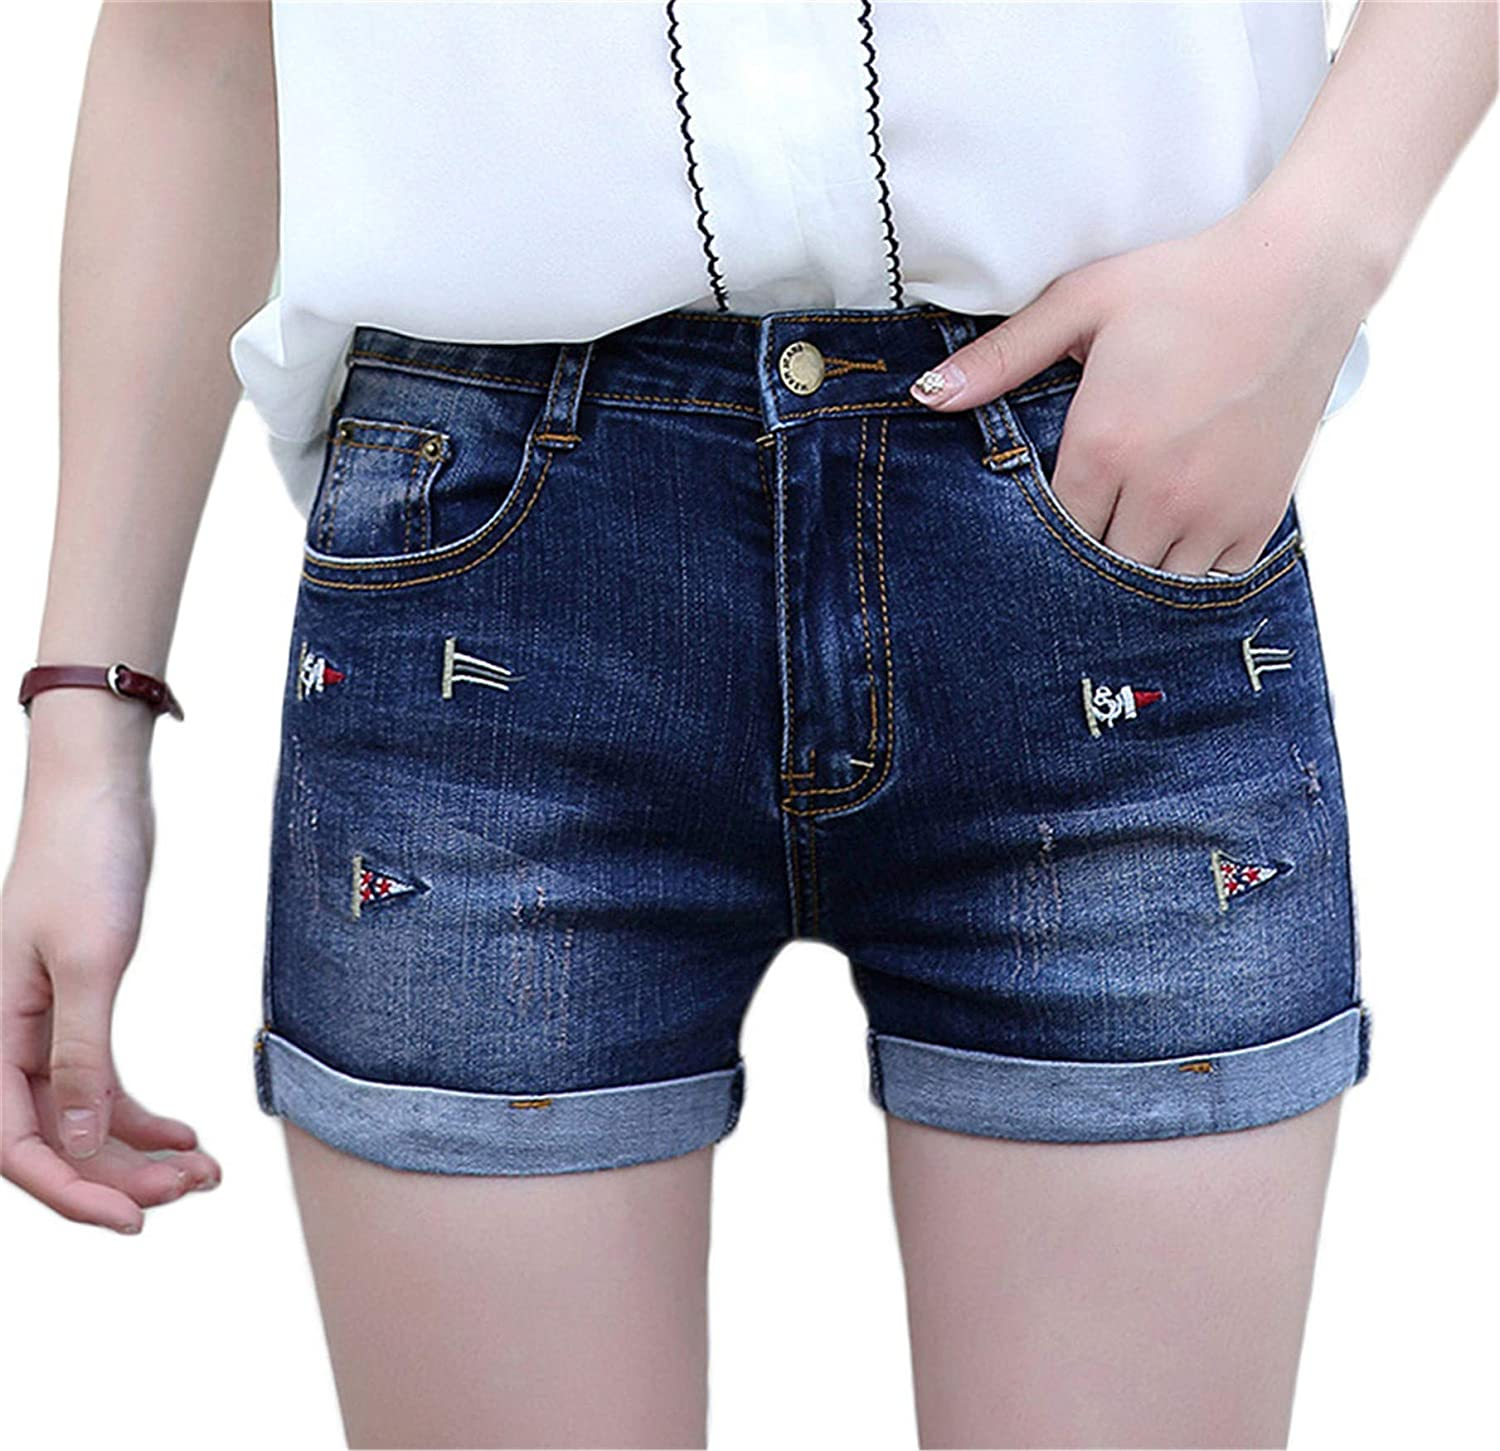 Andongnywell Women's Ripped Denim Jean Shorts Mid Rise Stretchy Folded Hem Short Jeans Distressed Hot Trousers